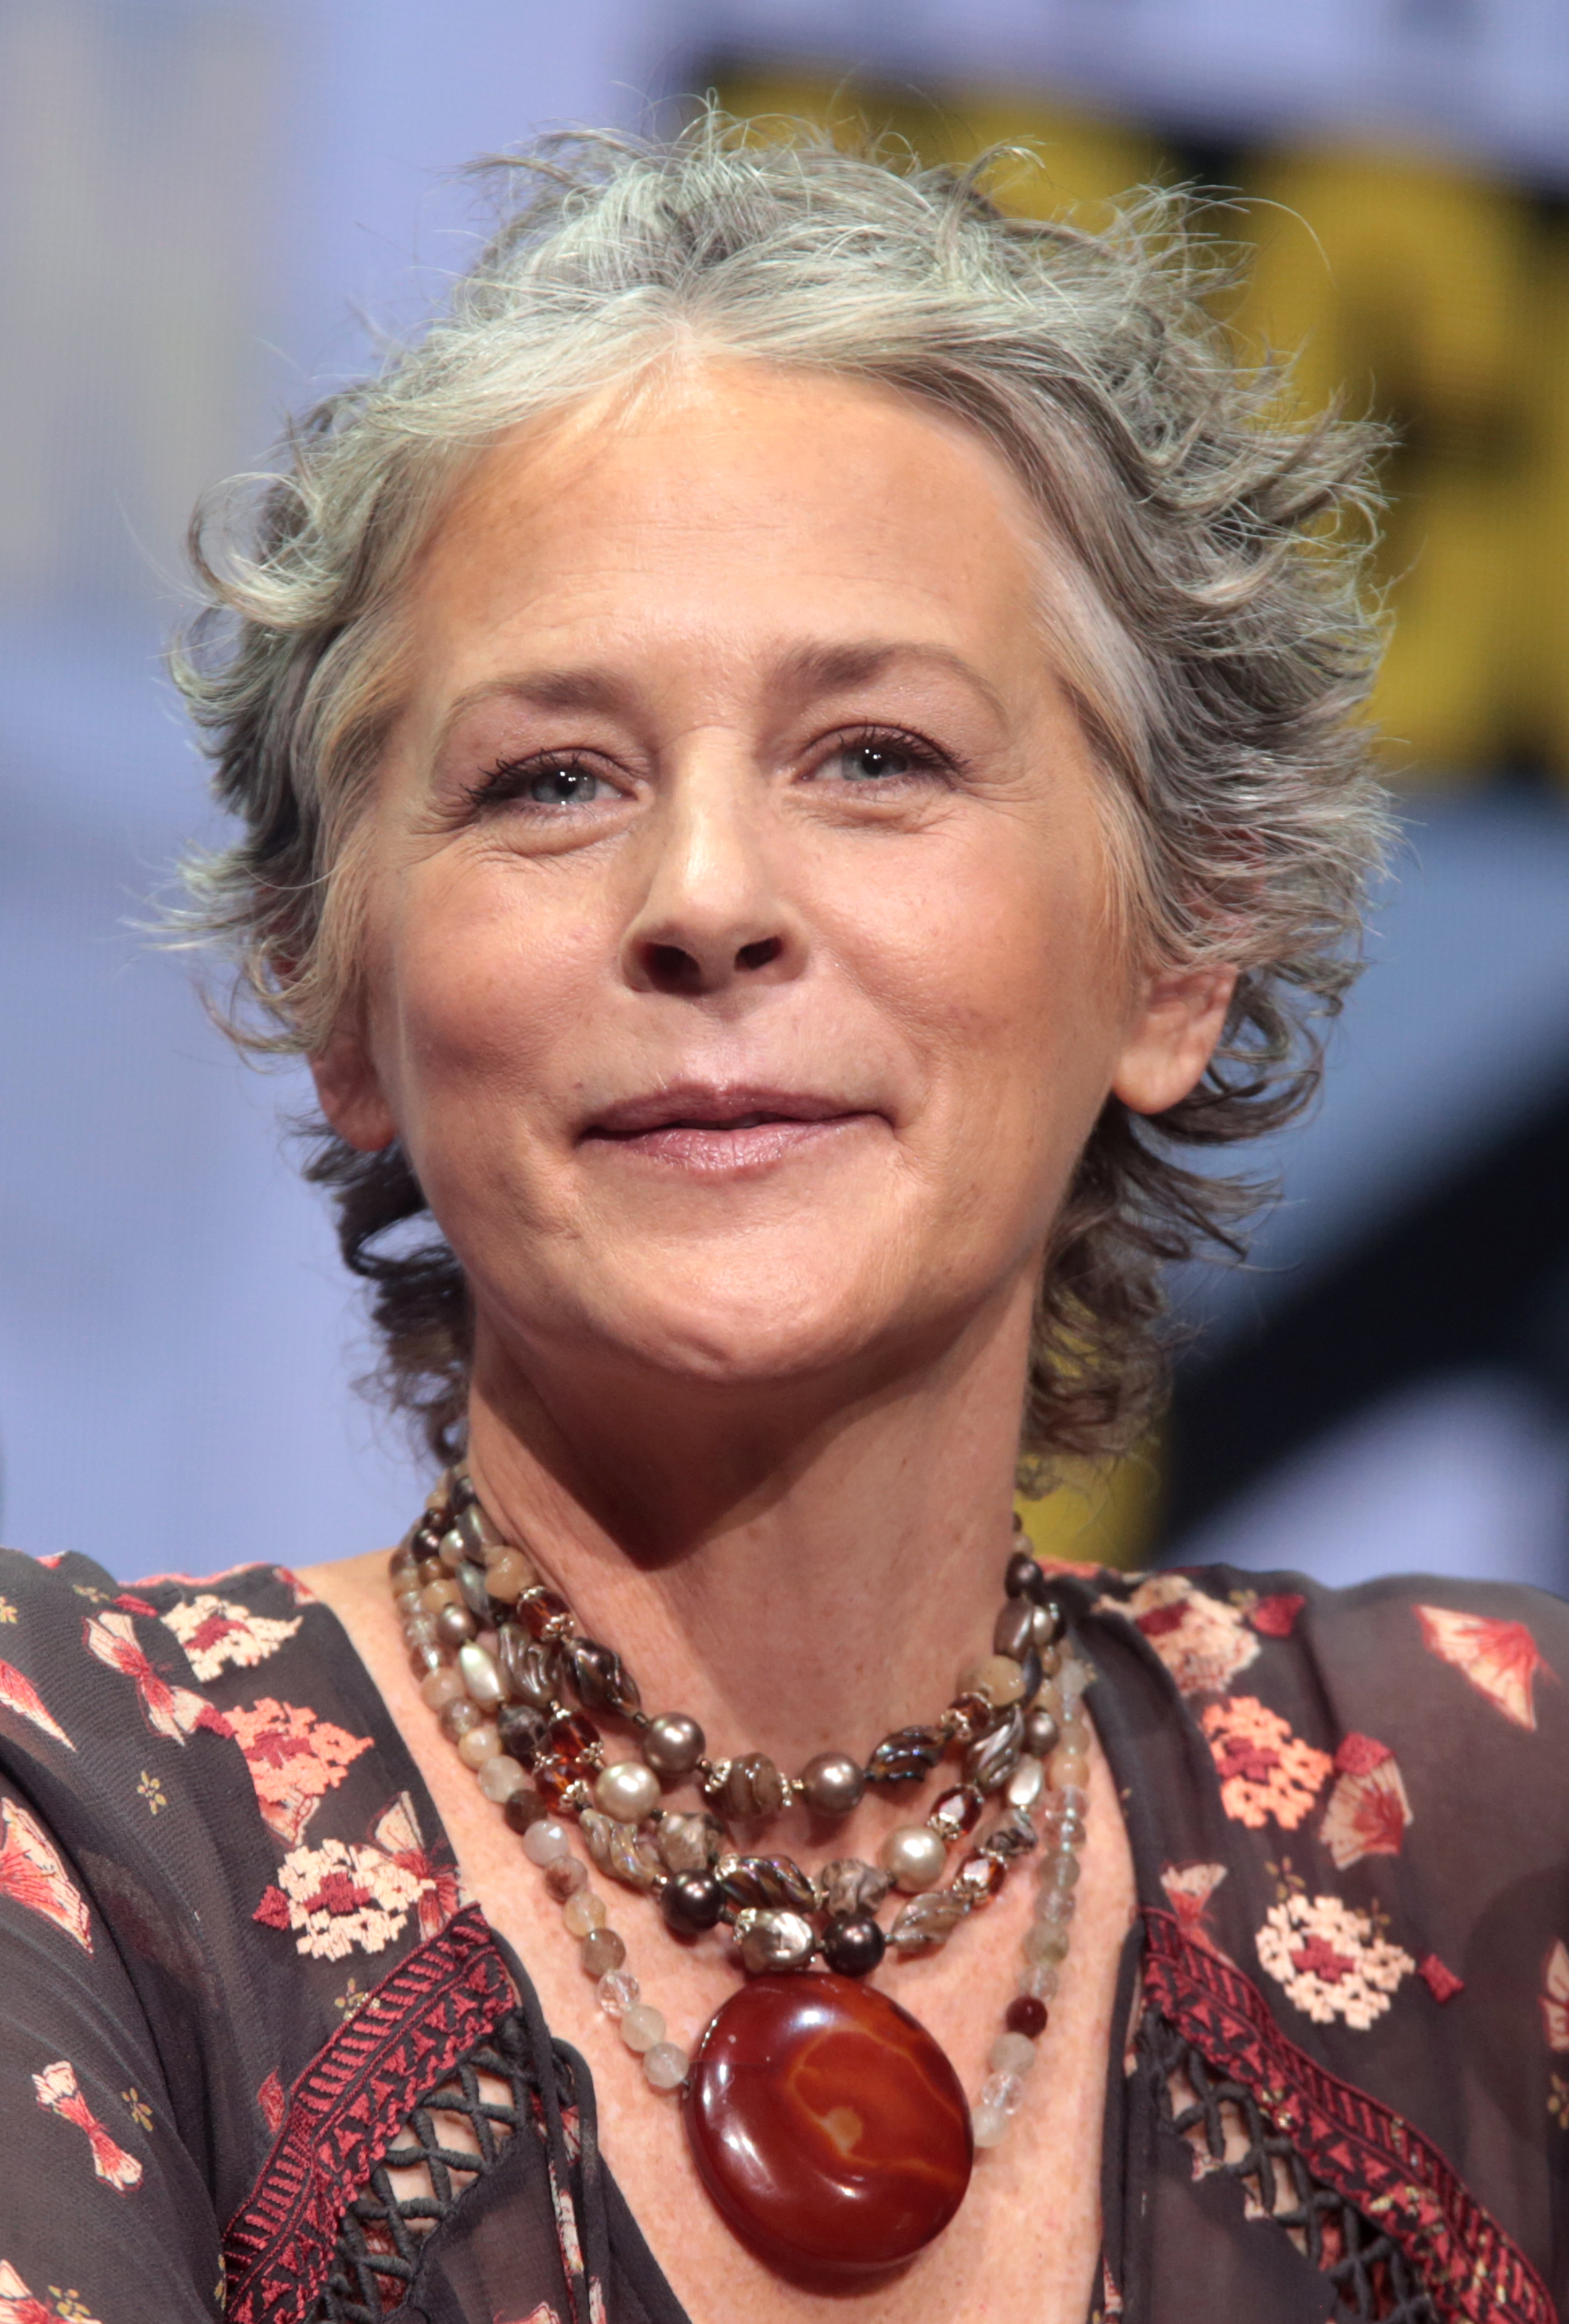 The 53-year old daughter of father Reuben McBride and mother Mary Anna Anderson Melissa McBride in 2018 photo. Melissa McBride earned a  million dollar salary - leaving the net worth at 4 million in 2018